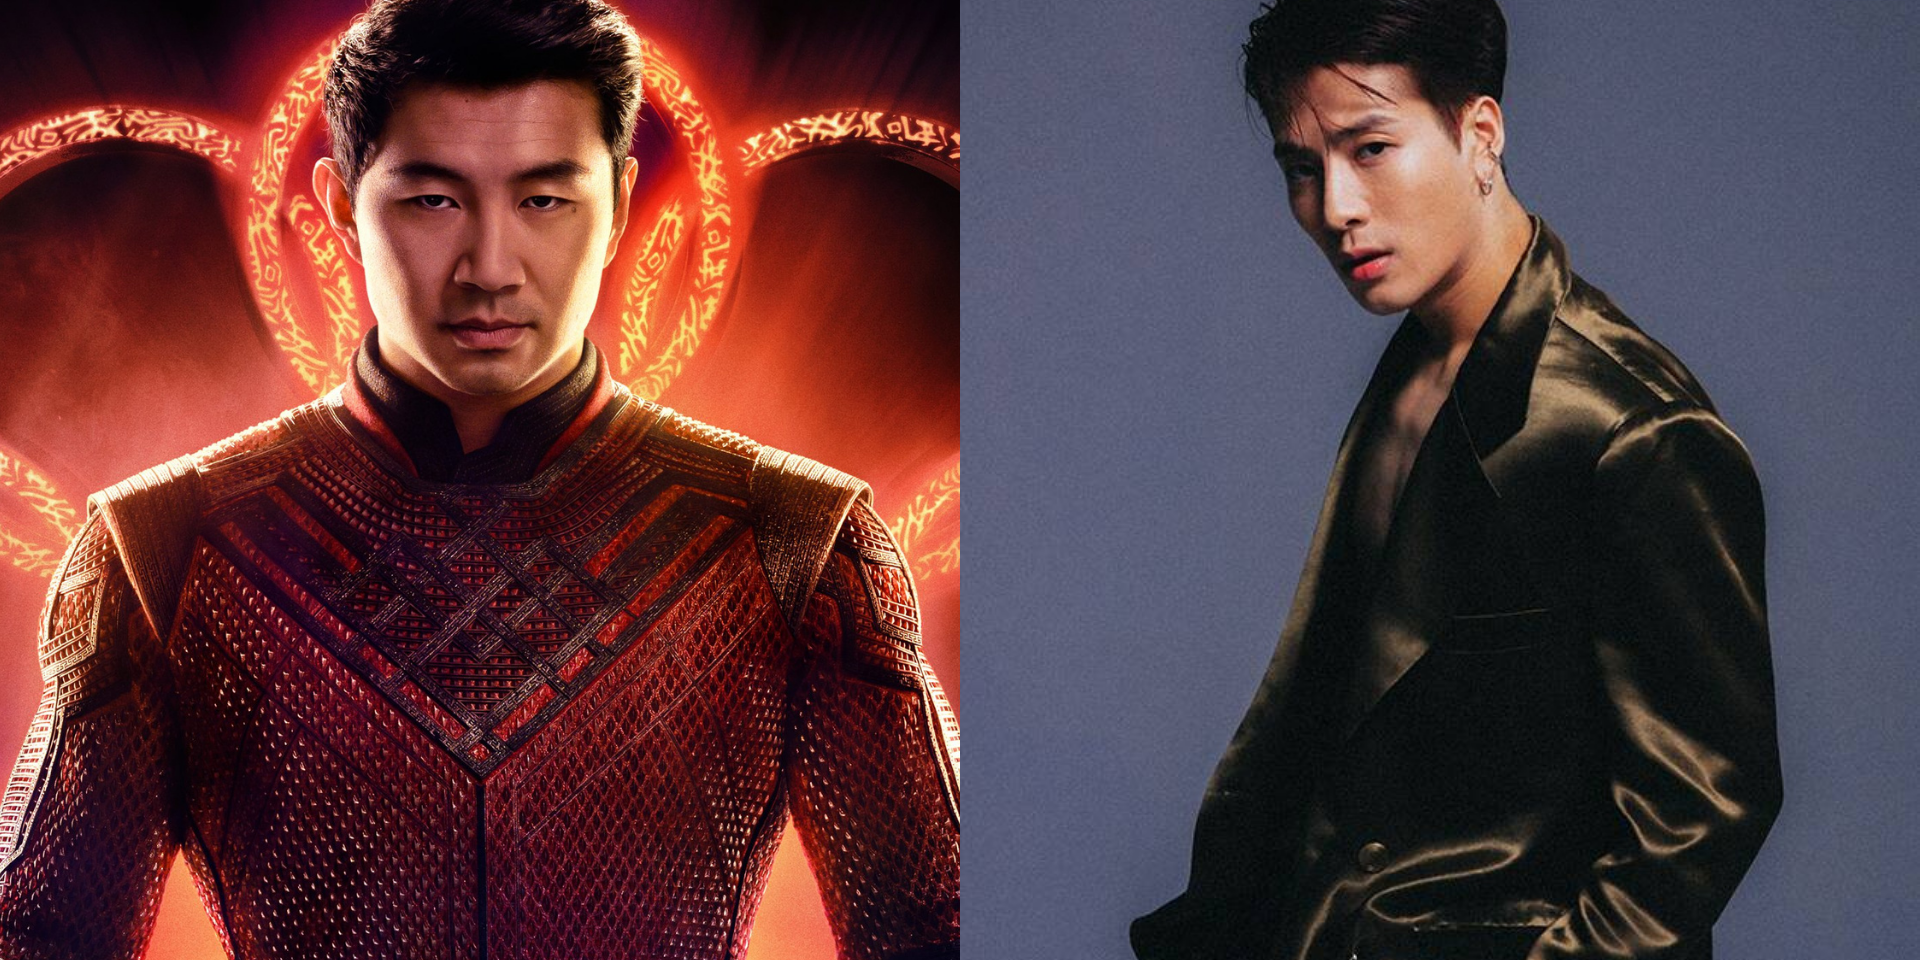 GOT7's Jackson Wang features in the official trailer of Marvel's 'Shang-Chi and the Legend of the Ten Rings'